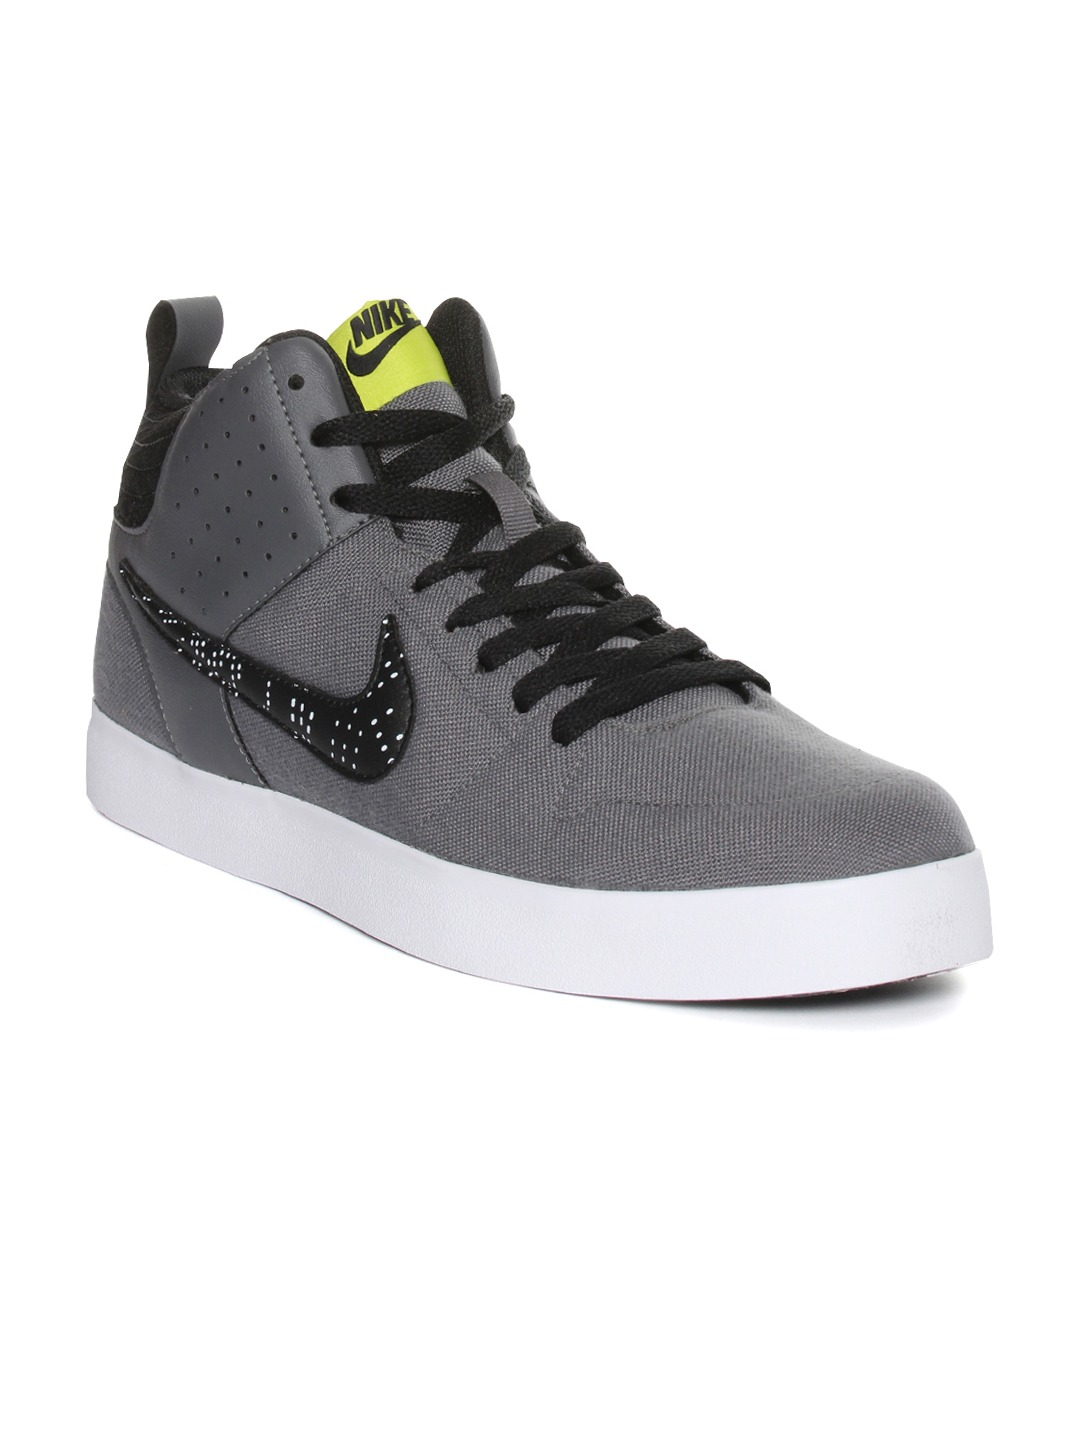 nike casual shoes for men online